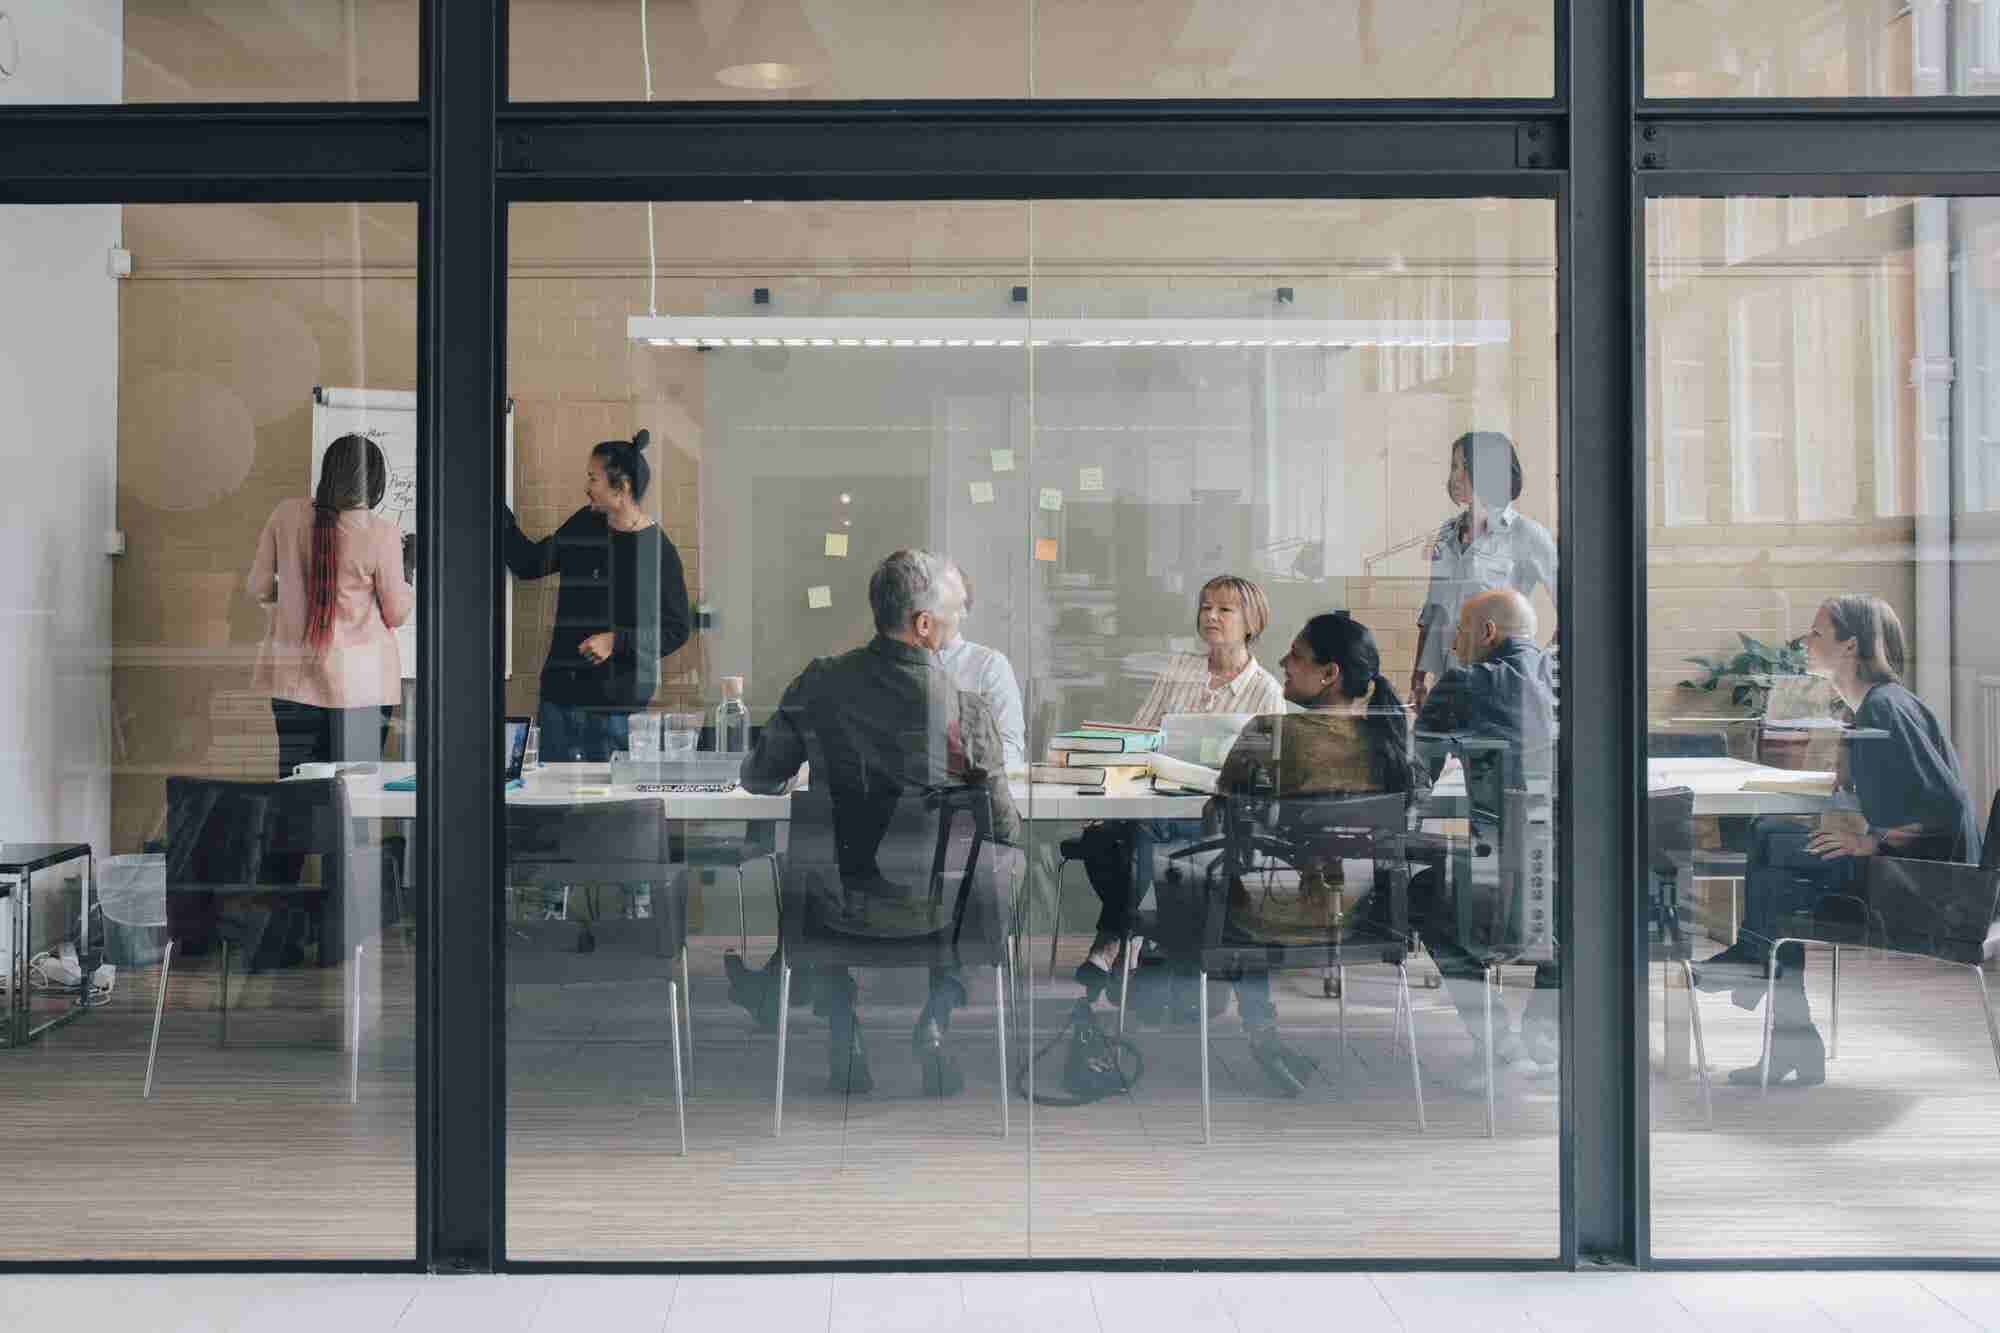 Reducing the Communication Gap Between Employees and Management